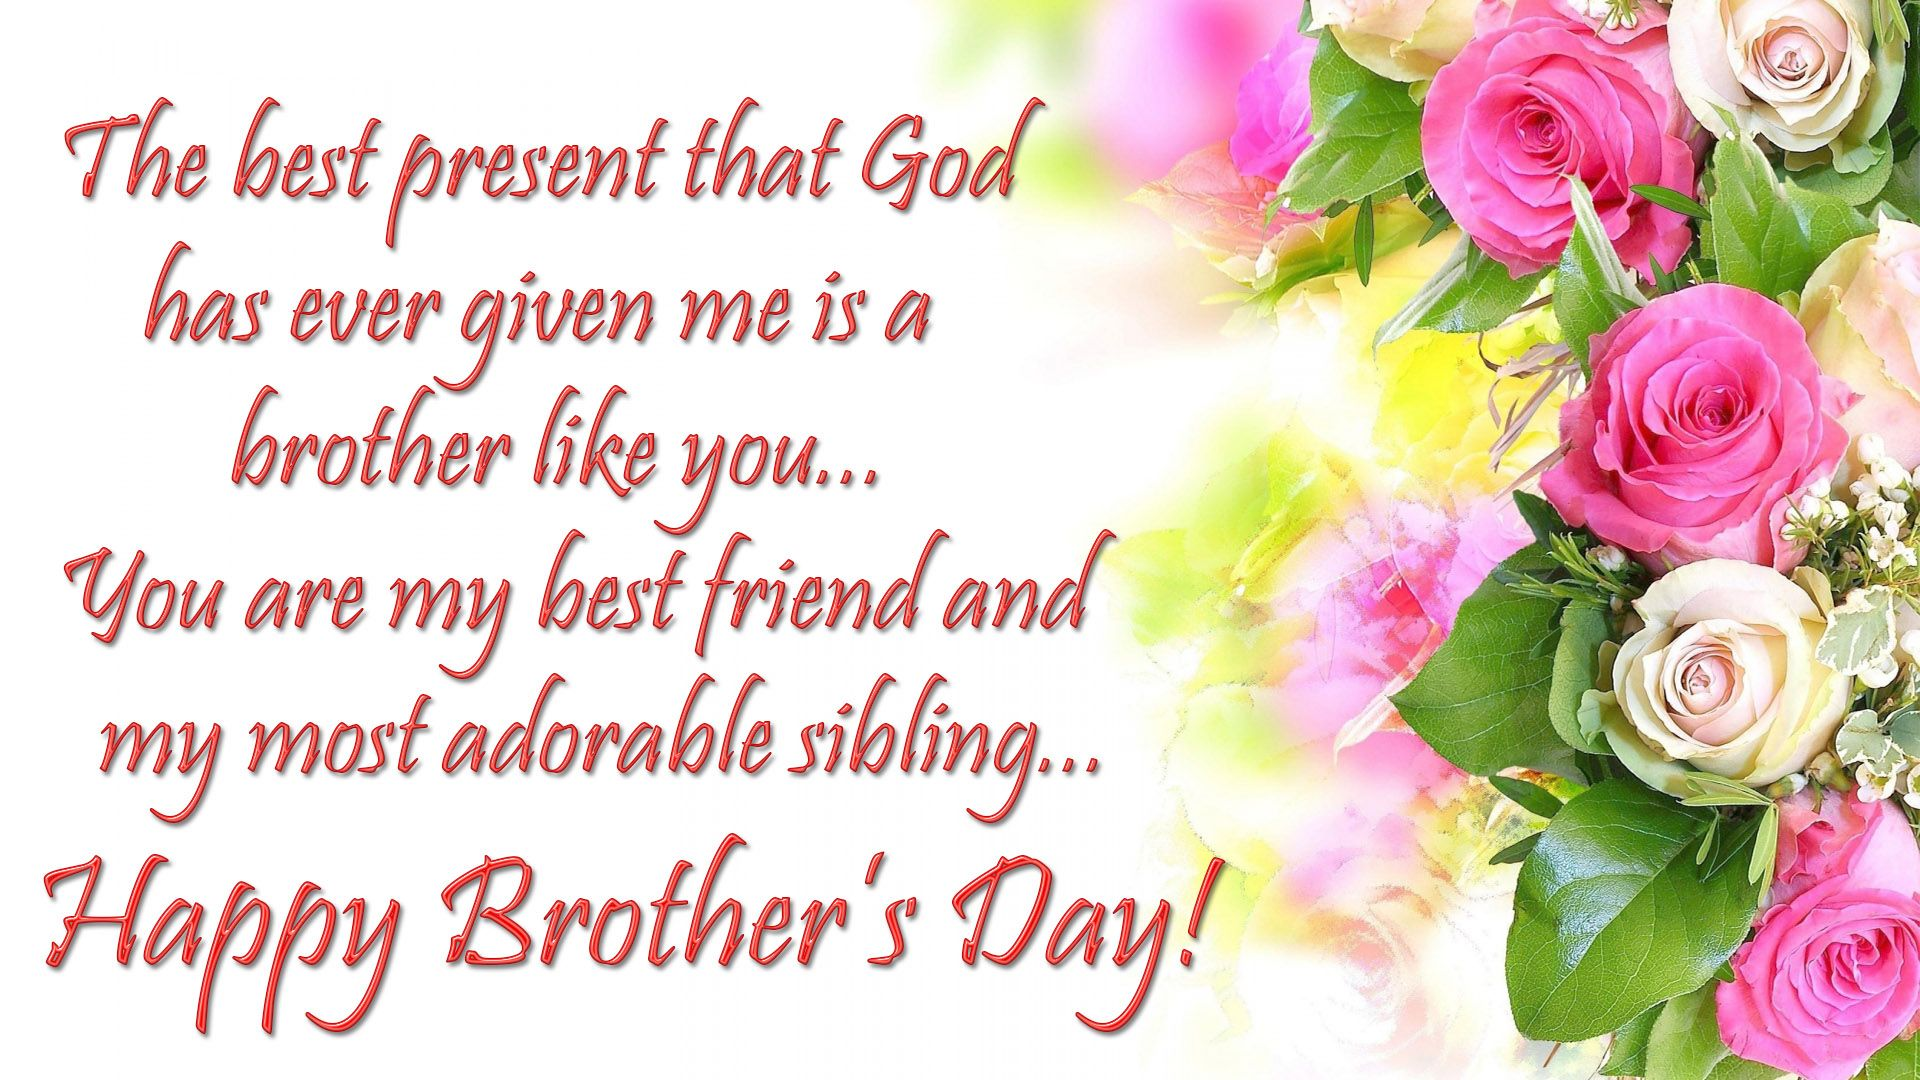 Happy Brothers Day Wishes Messages Images With images Happy 1920x1080